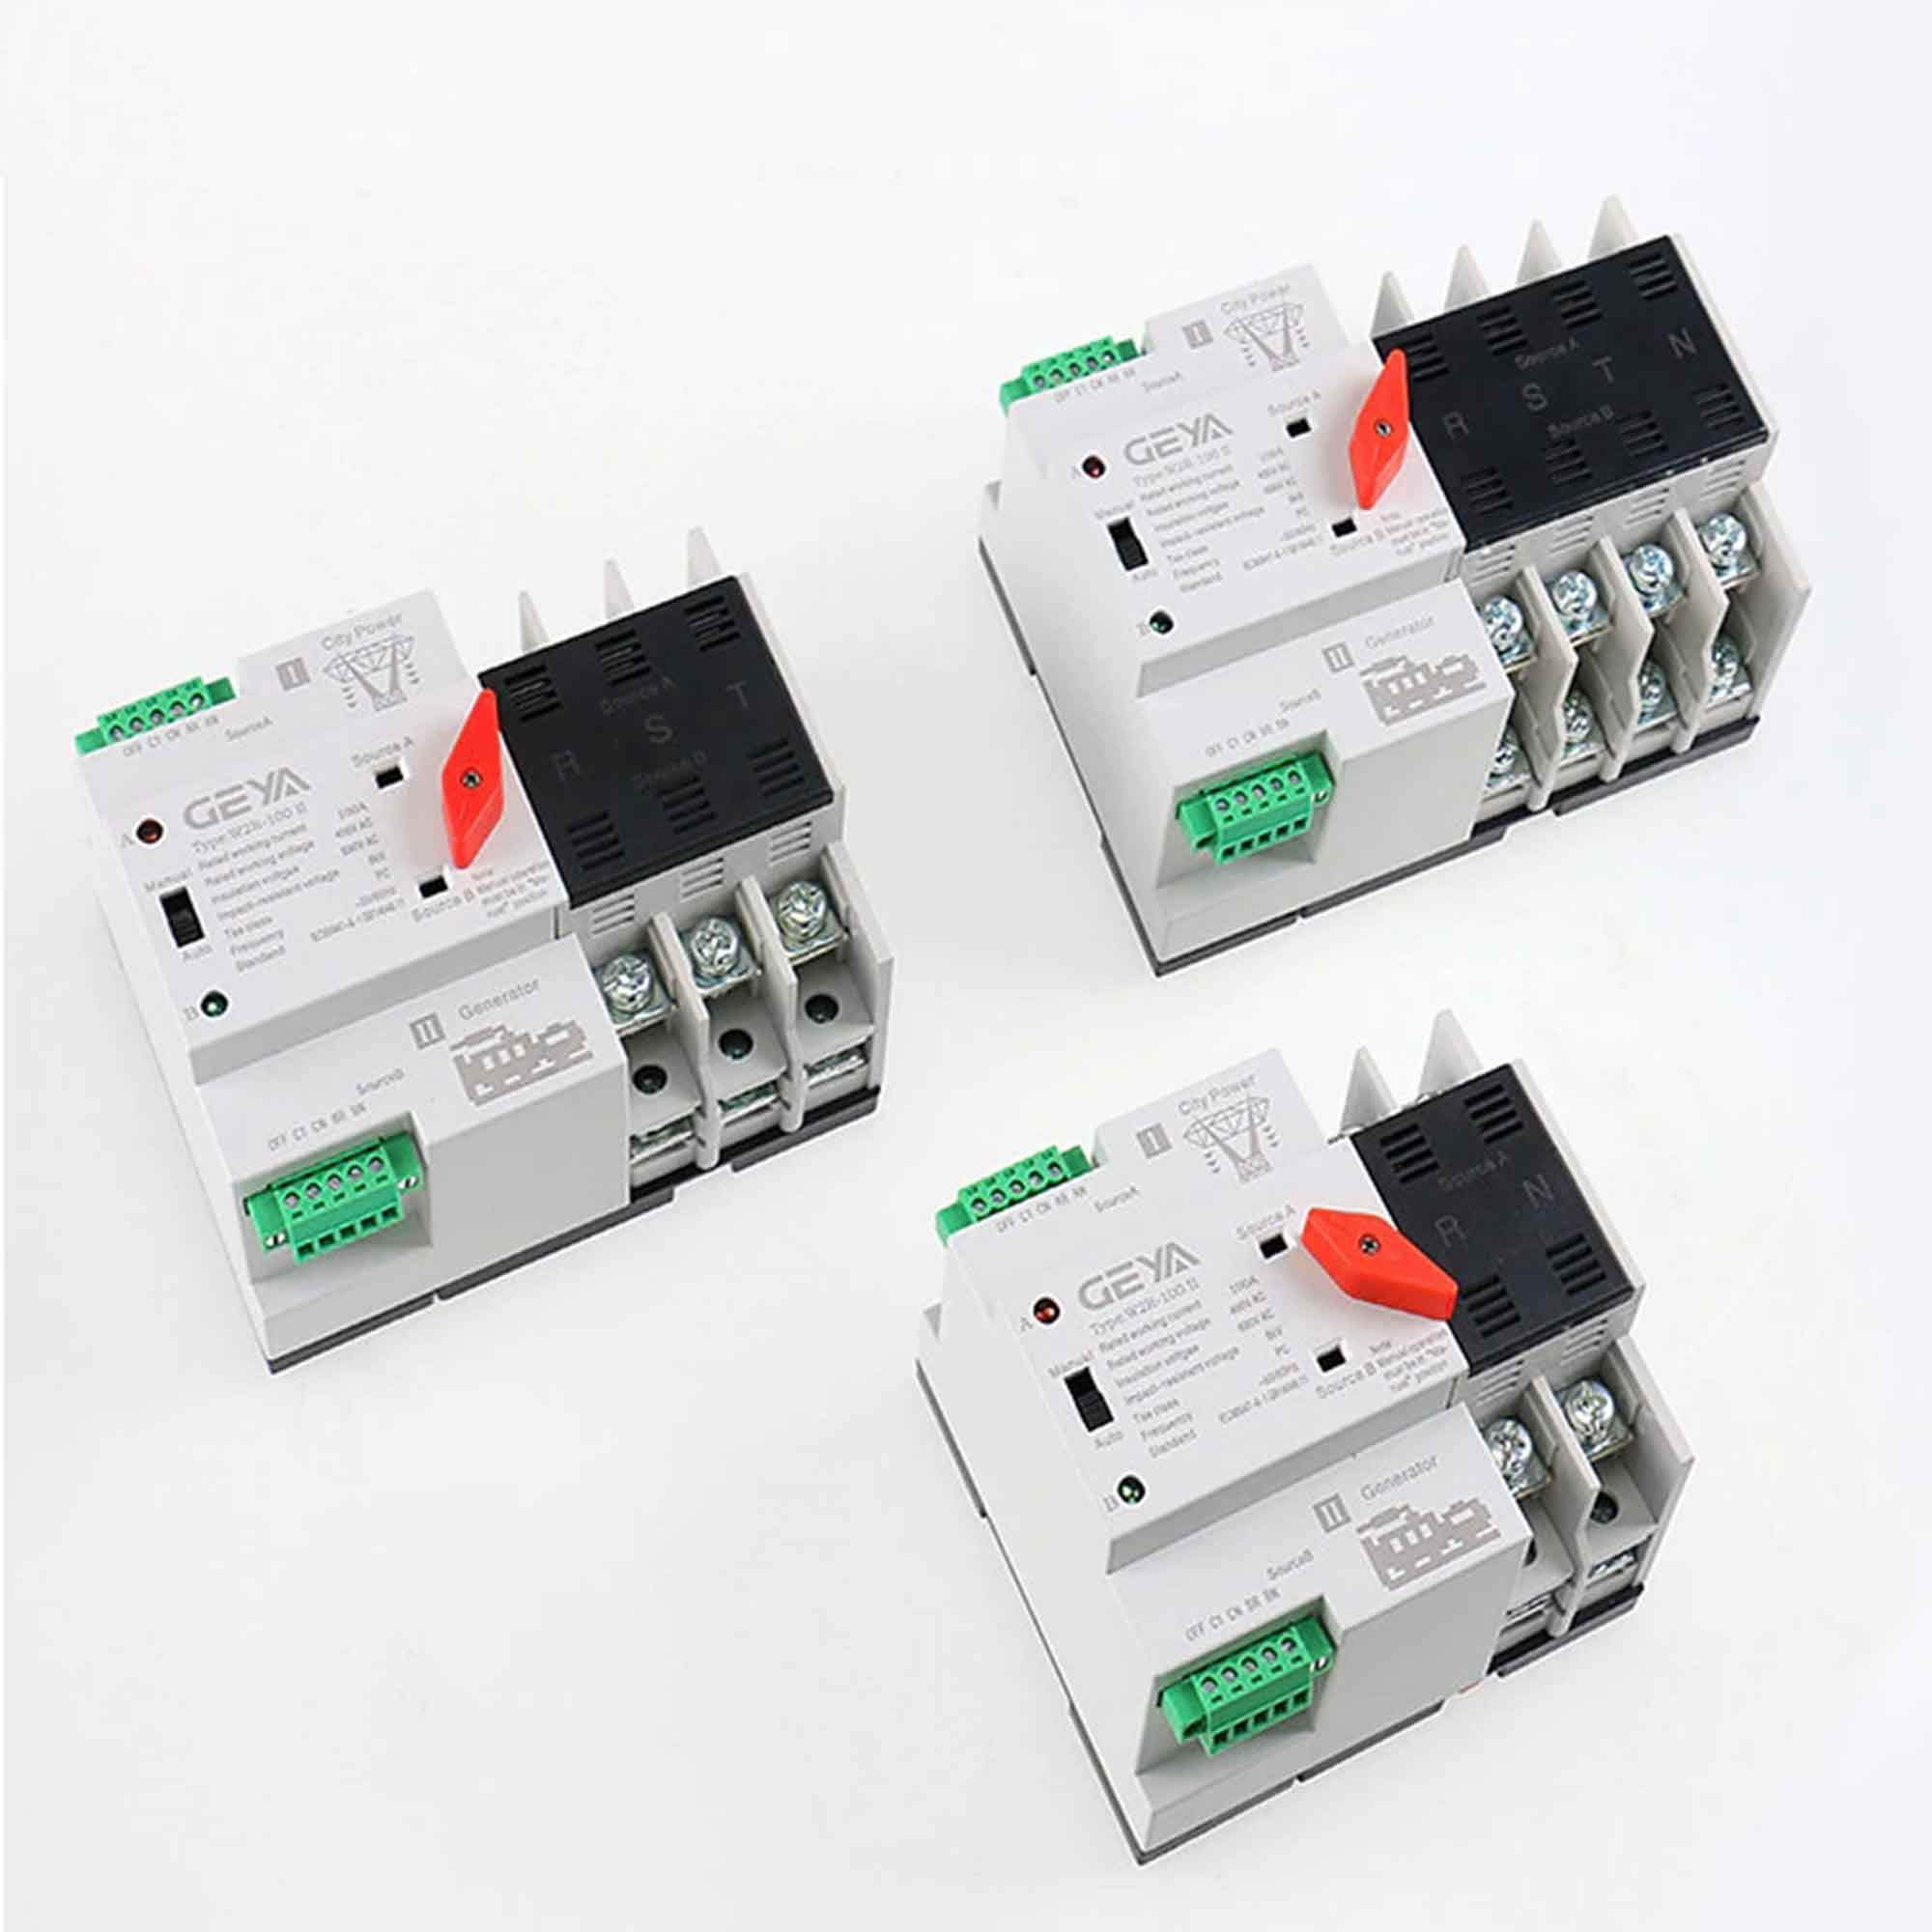 GAEYAELE W2R Mini ATS 4P Automatic Transfer Switch Controller Electrical Type ATS Max 100A 4POLE (W2R-4P 100A) by GAEYAELE (Image #7)